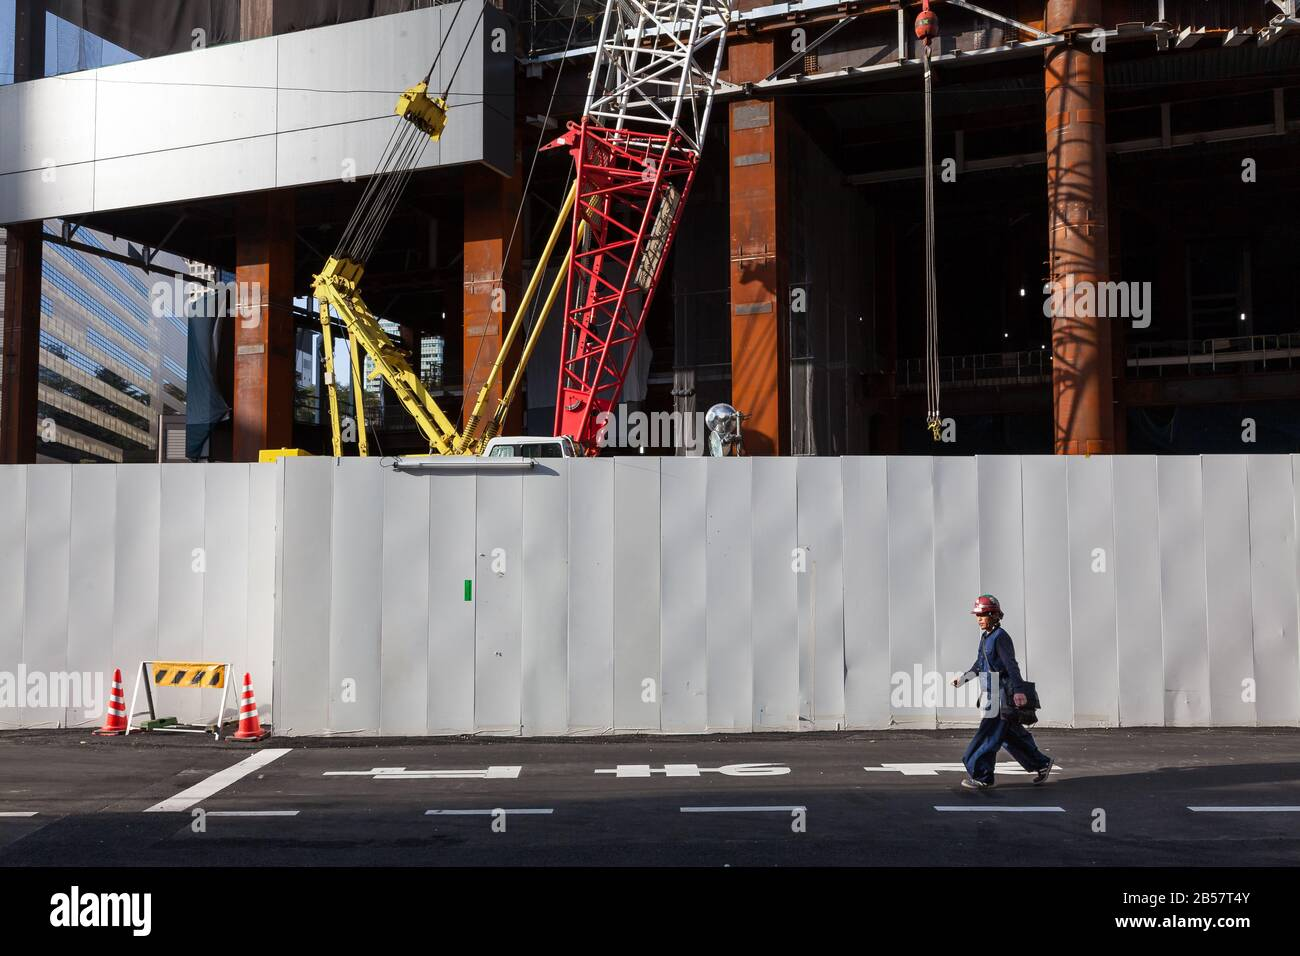 A construction worker walks past the wall of a construction site early in the morning. Akasaka, Tokyo, Japan. Friday April 15th 2016 Stock Photo